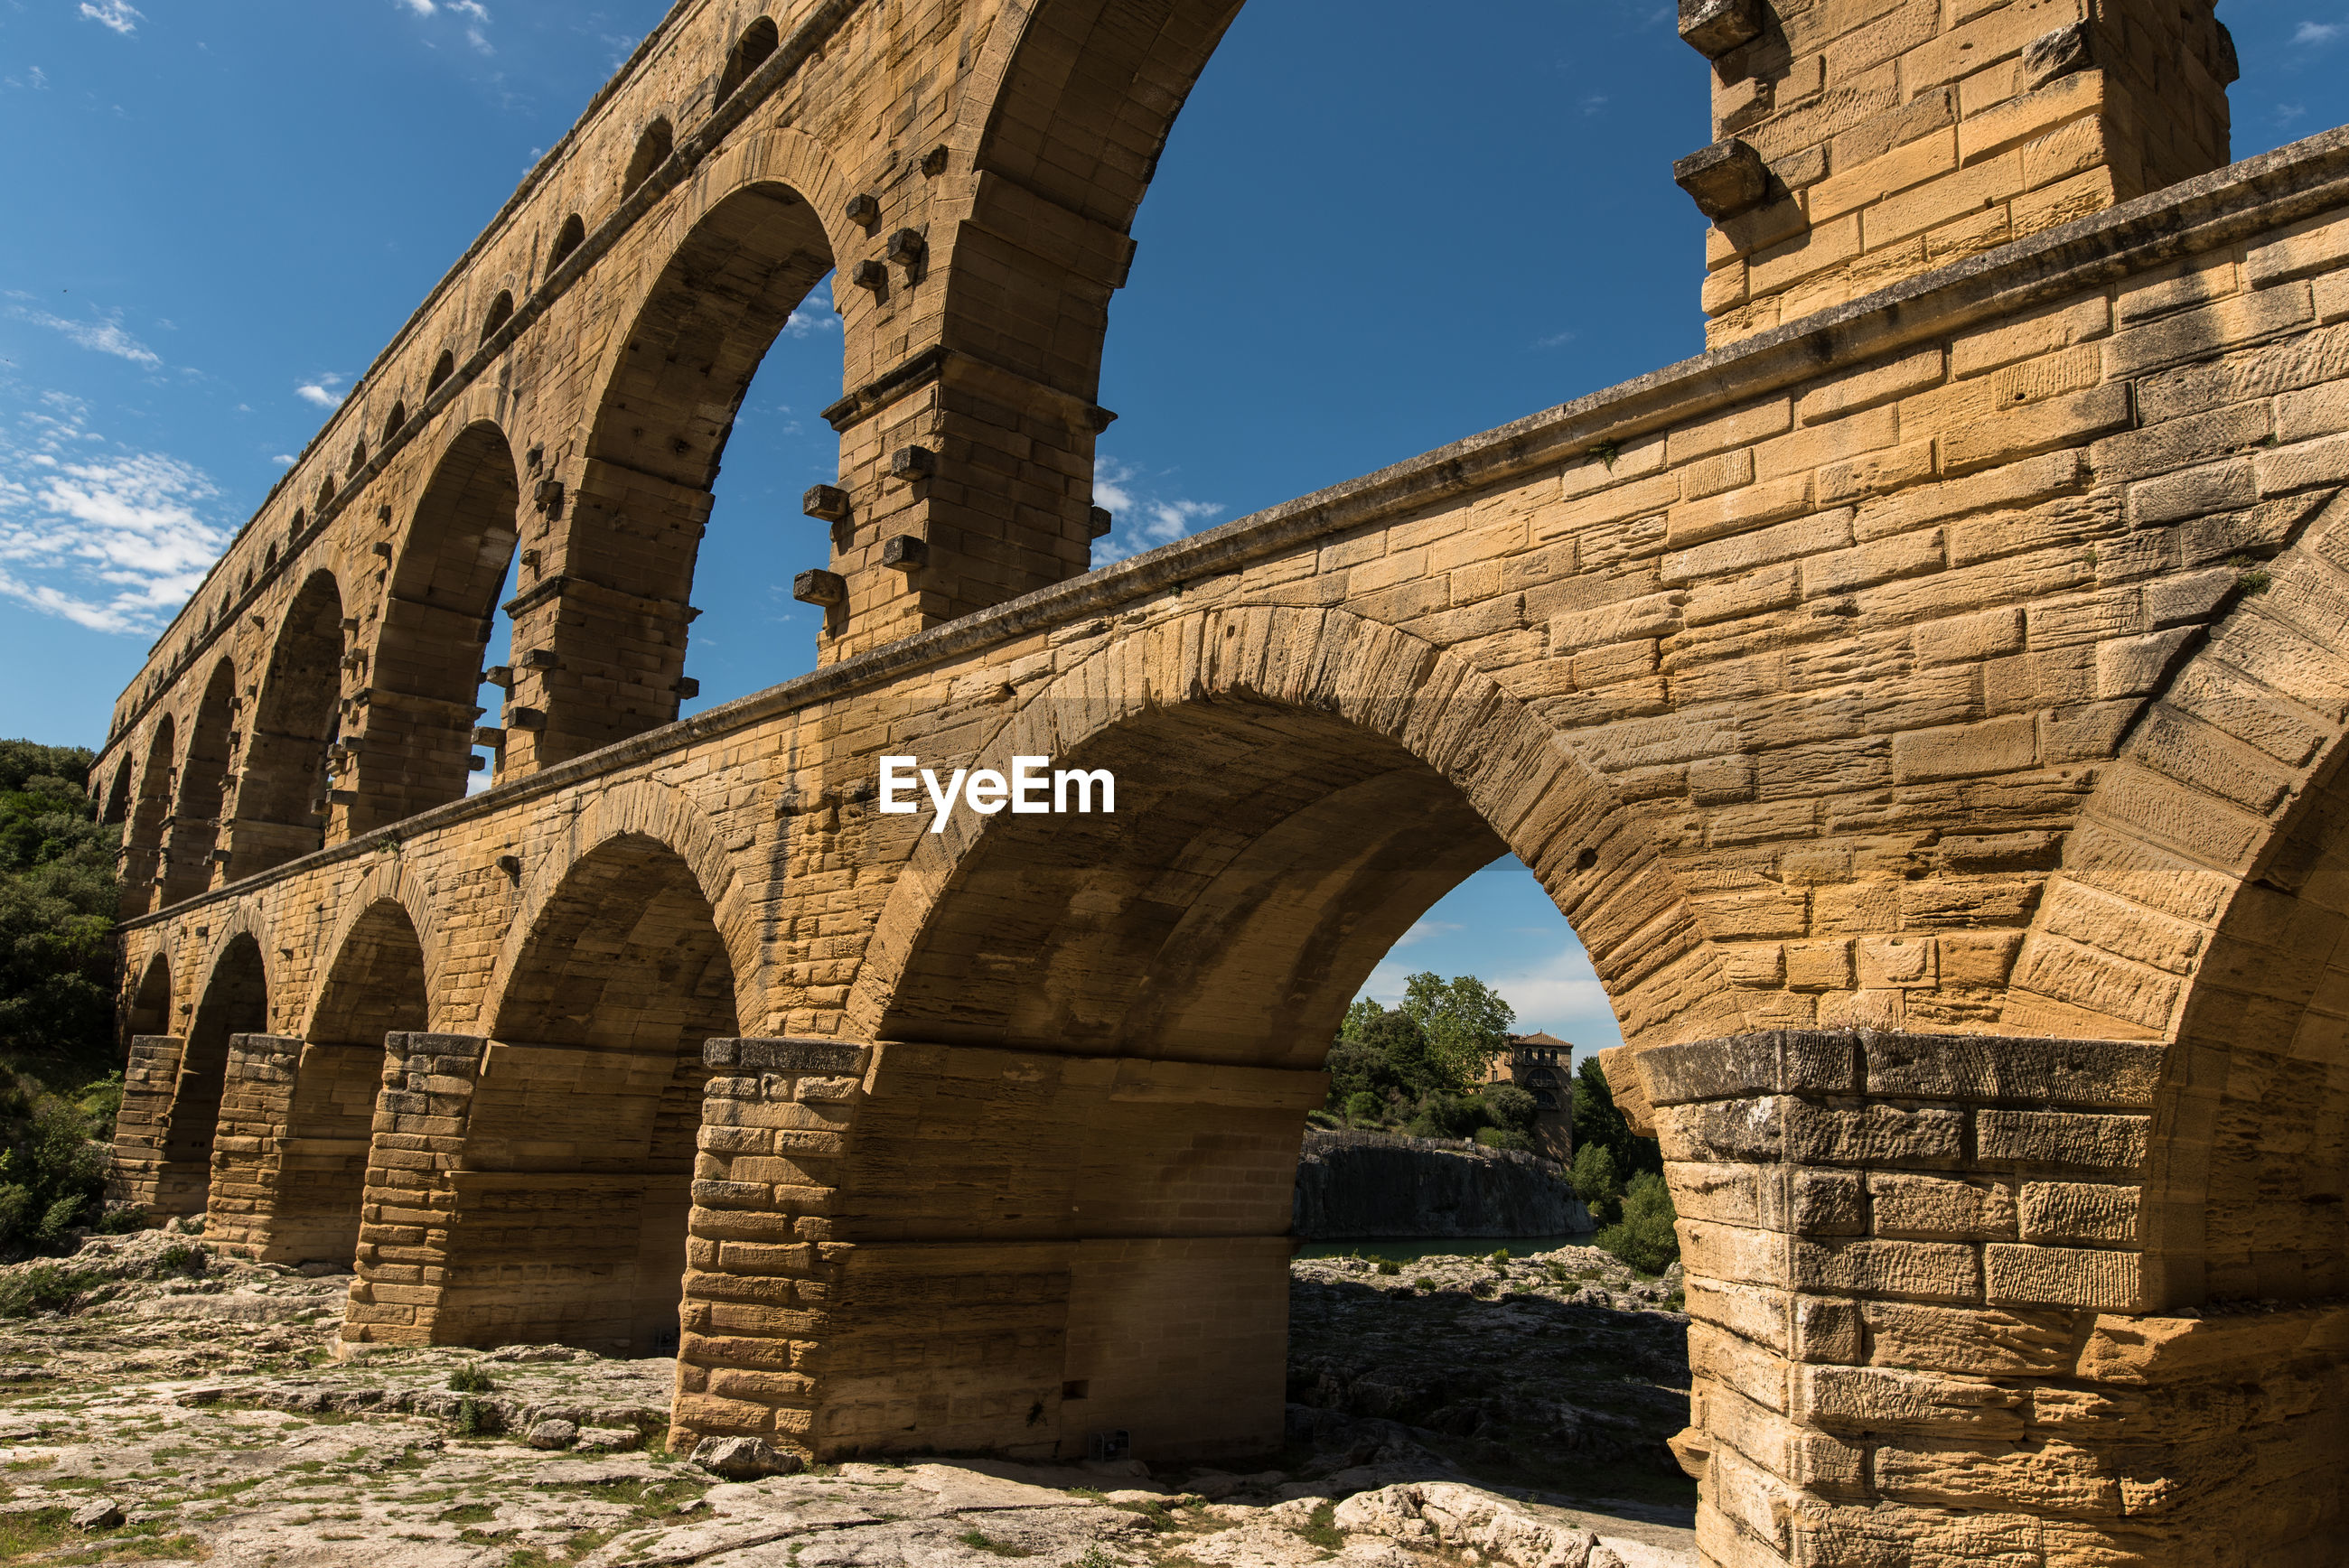 Low angle view of historical building pont du gard